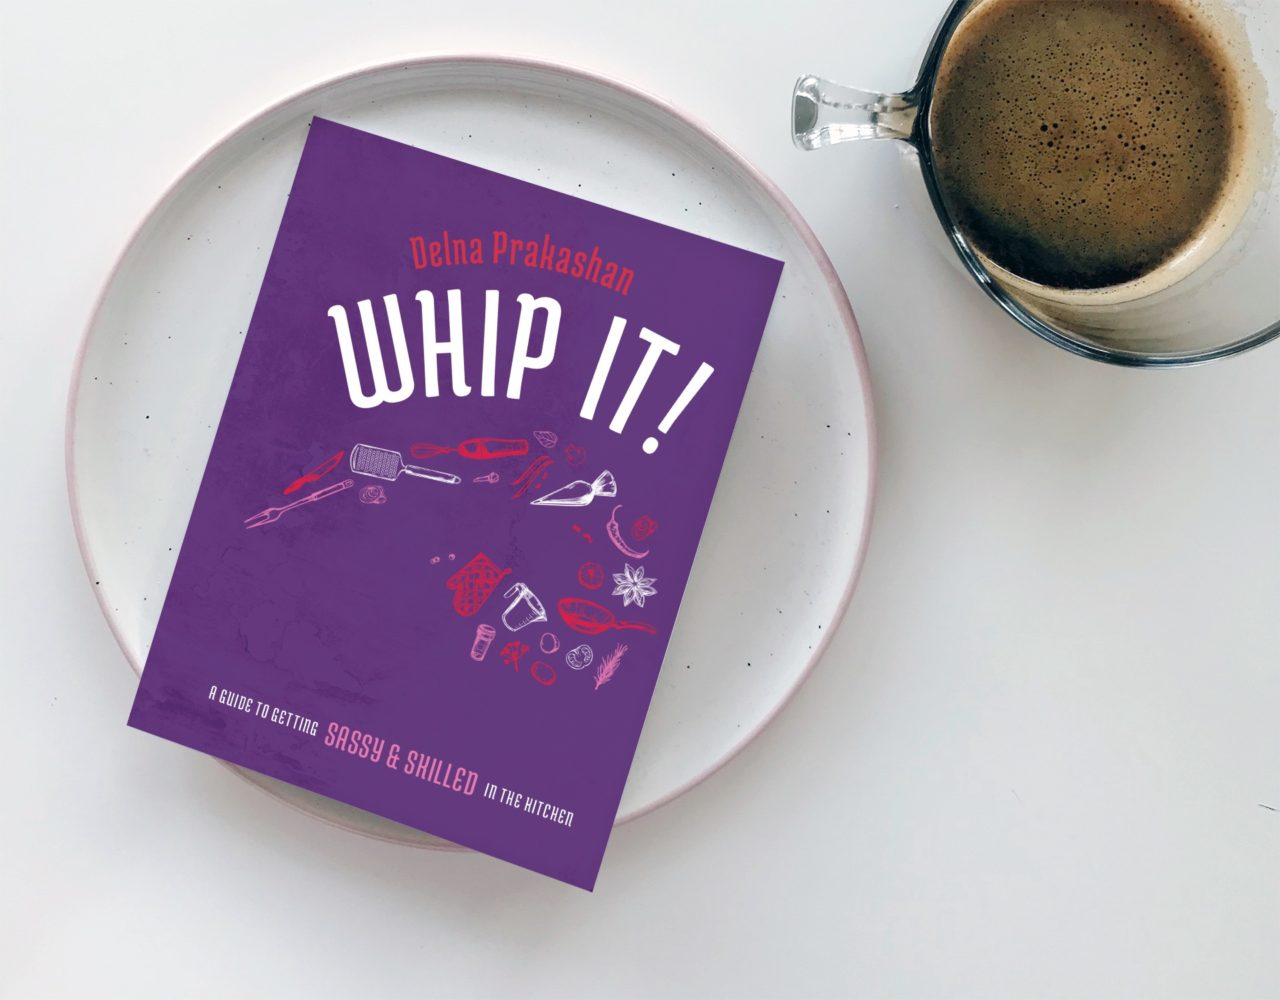 Whip It! cookbook